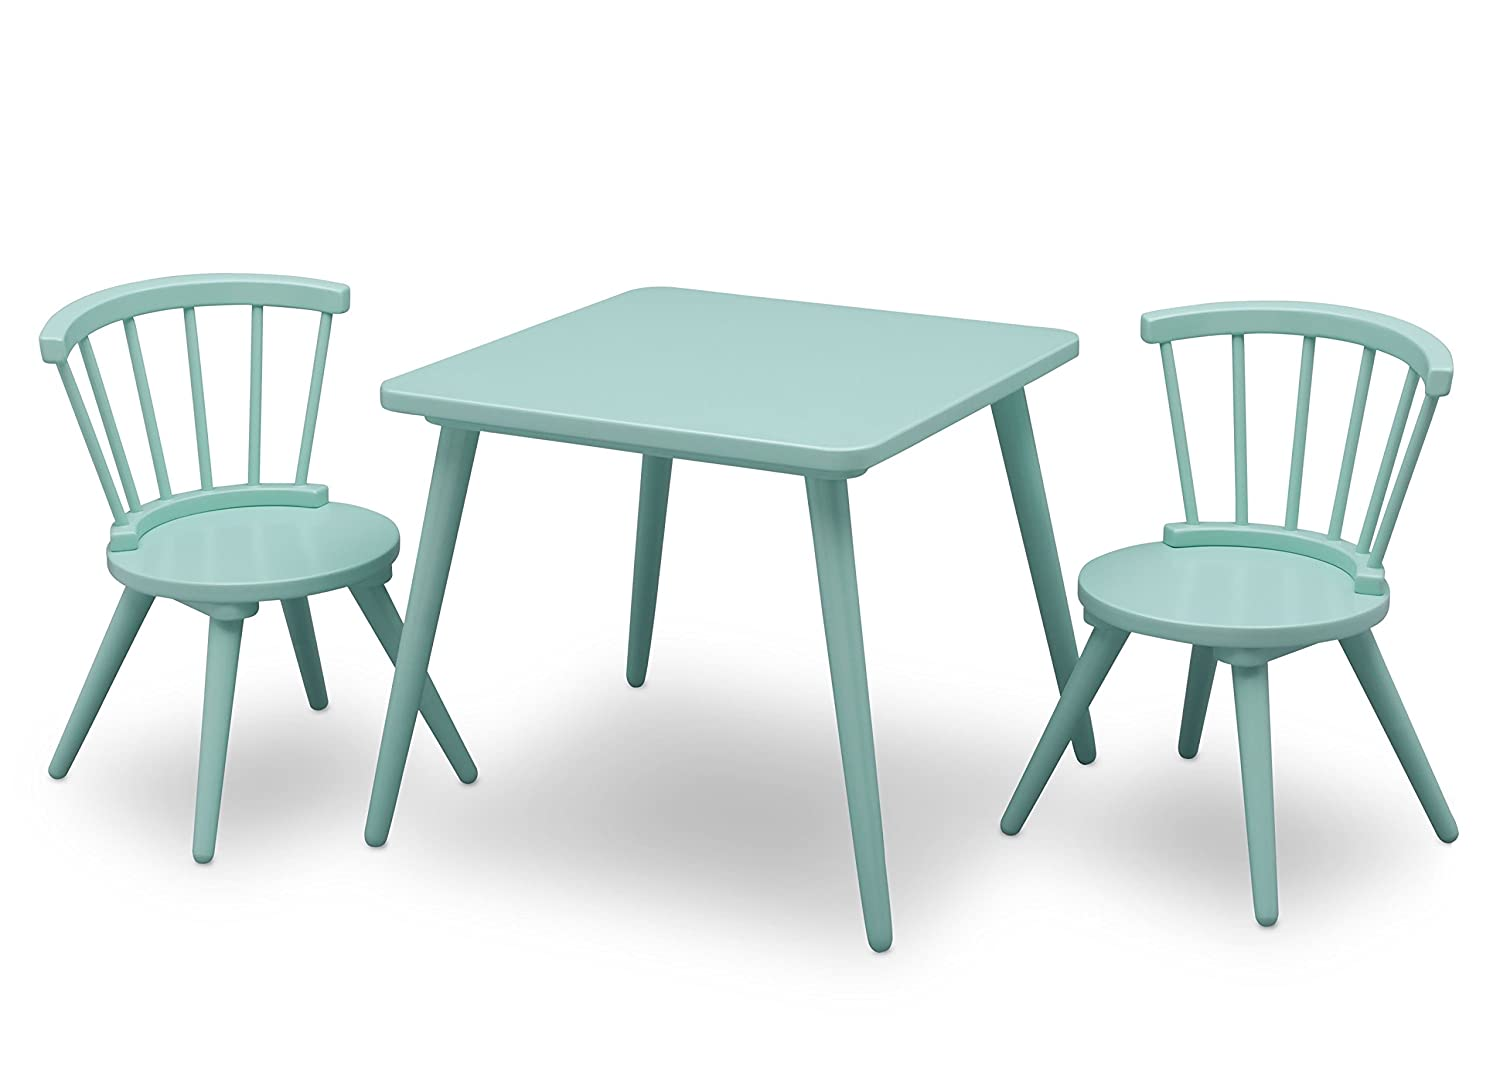 Delta Children Windsor Kids Wood Table and Chair Set (2 Chairs Included), Grey 531300-026